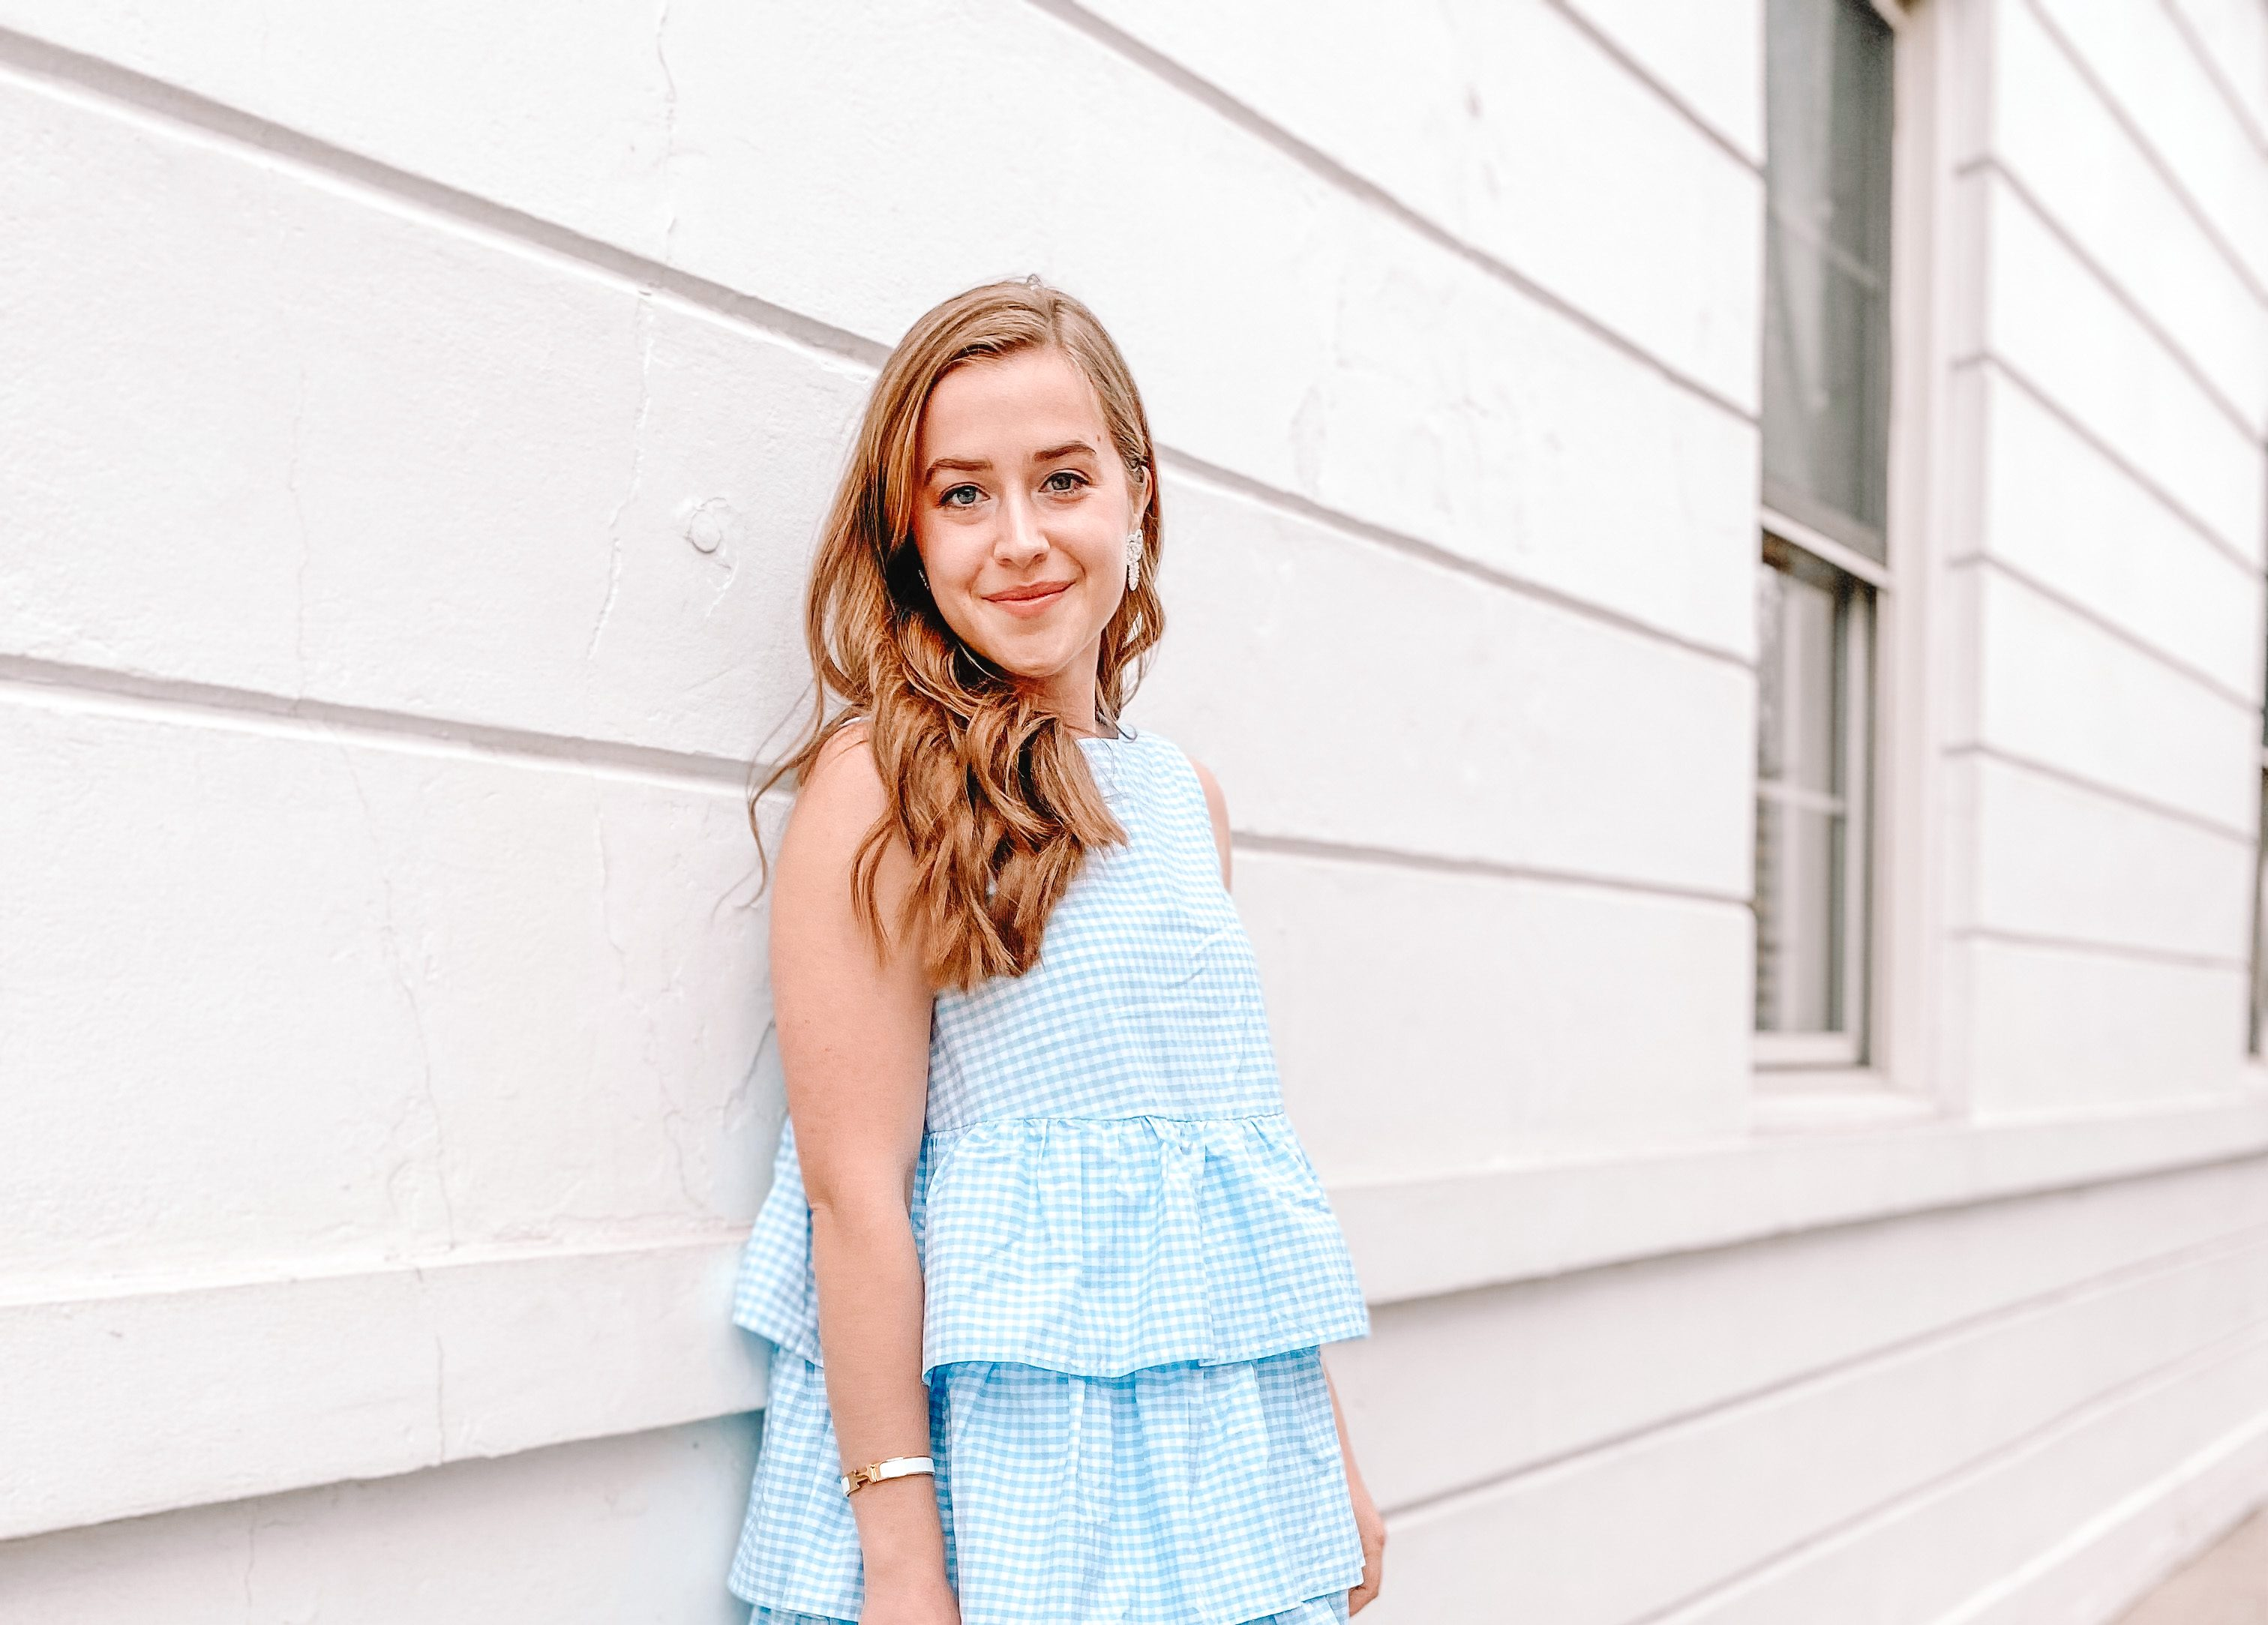 vaccinated girl smiles after covid 19 pandemic in gingham dress